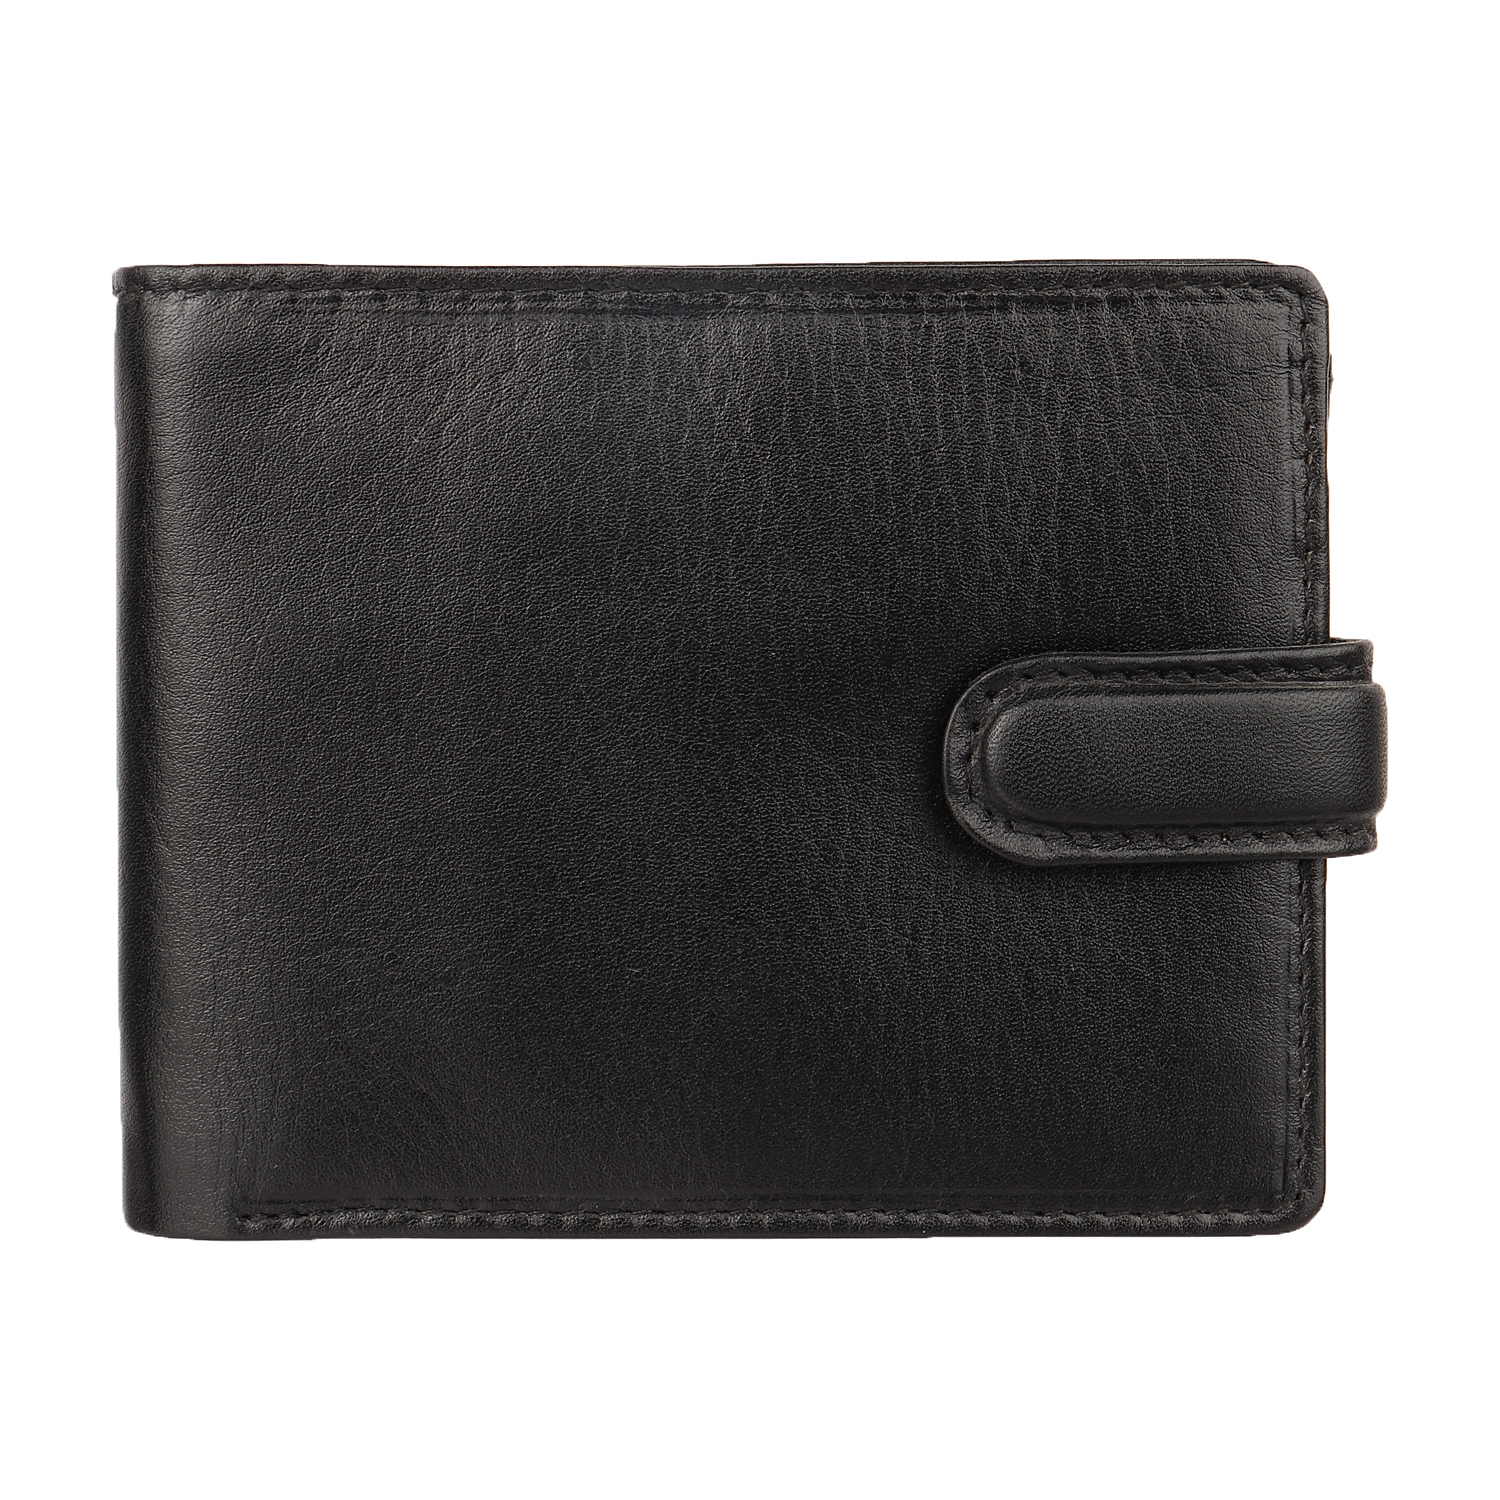 Genuine Leather Coin Wallet